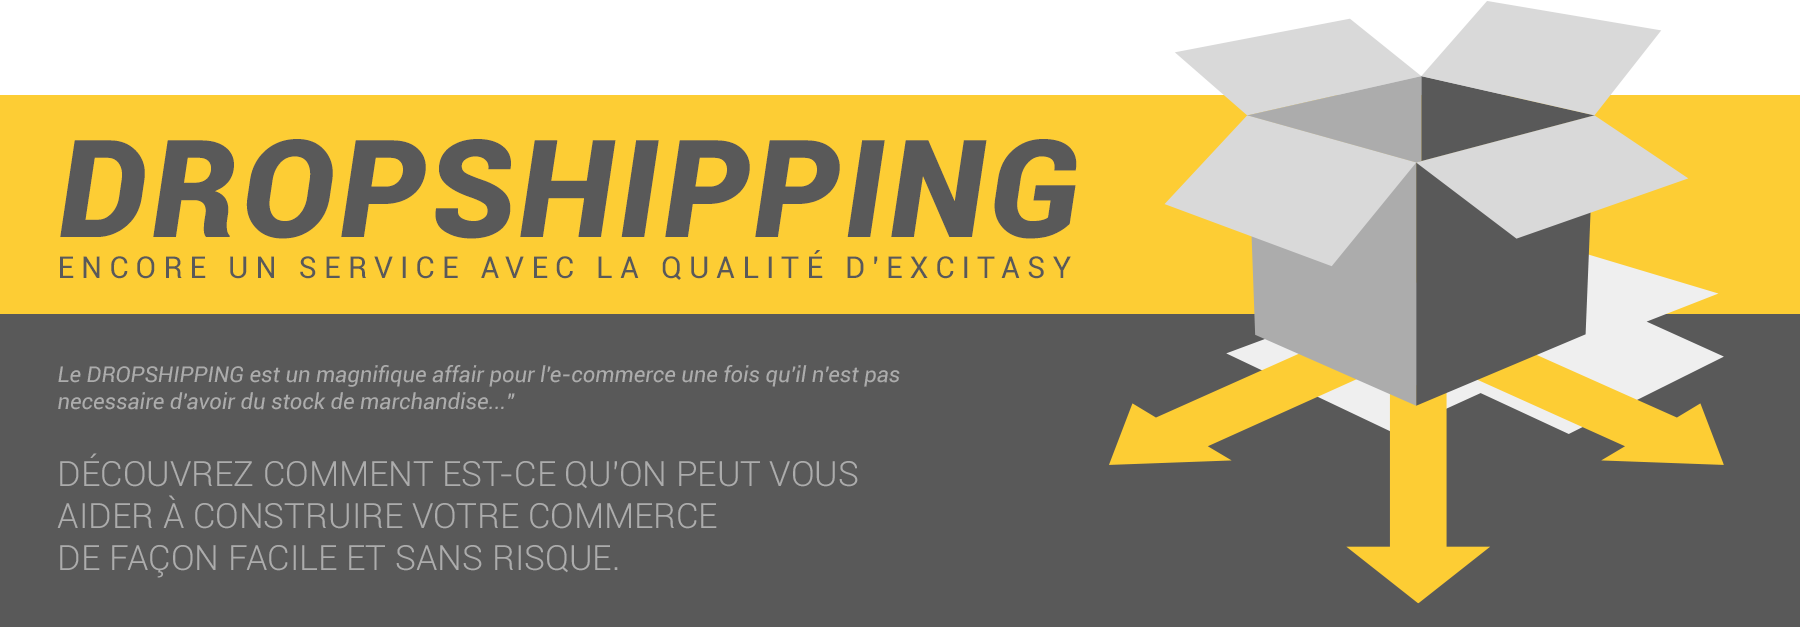 dropshipping by excitasy